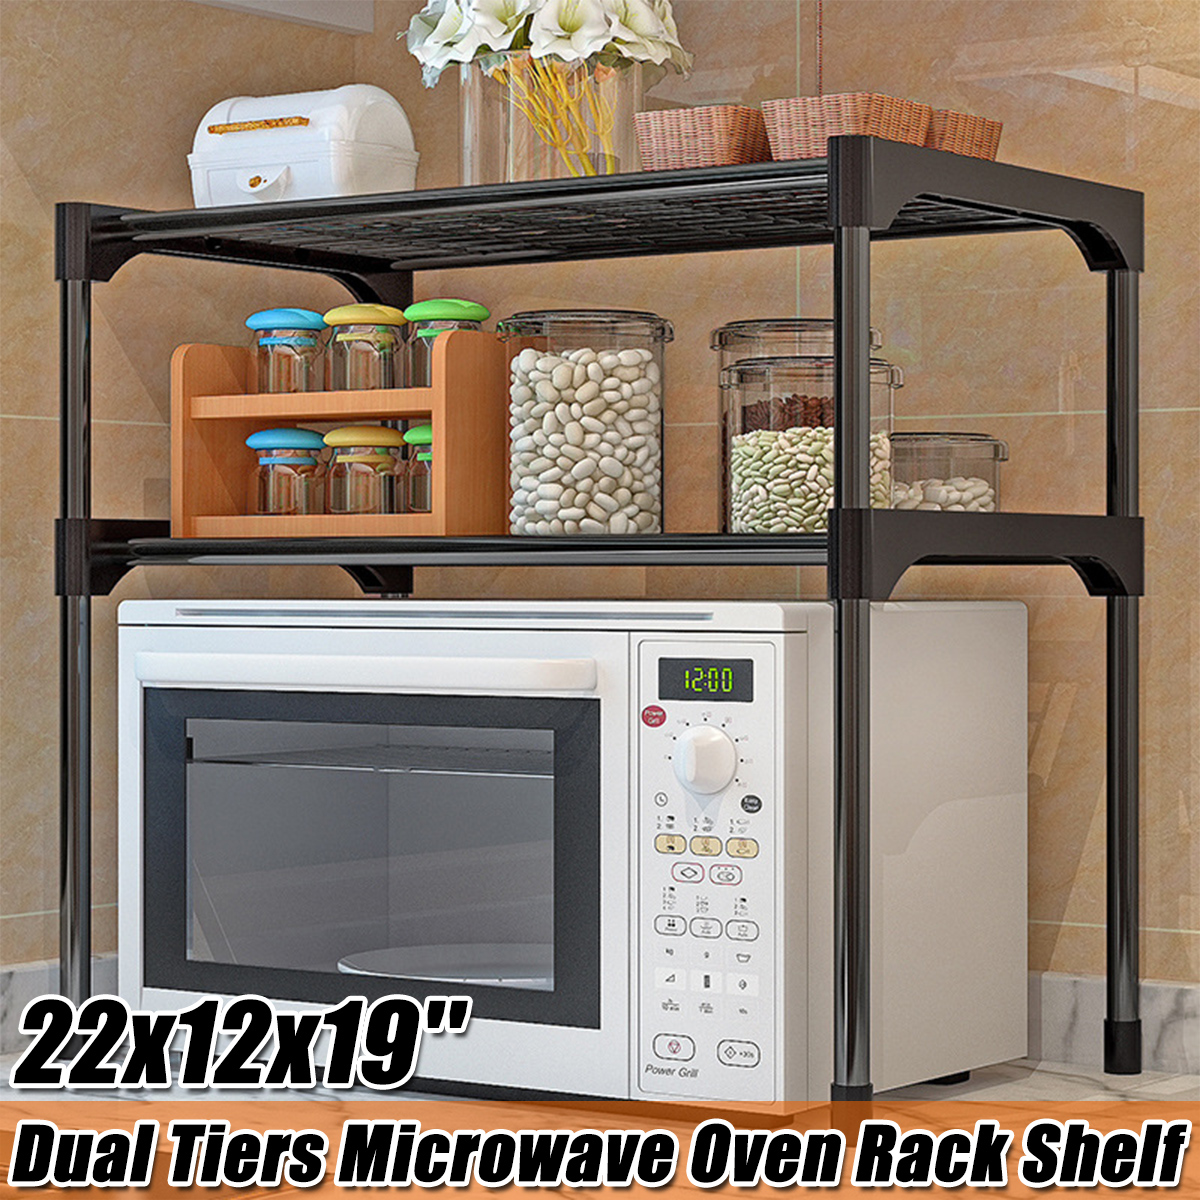 microwave stand toaster oven rack 2 tier microwave shelf counter spice organizer shelf for kitchen storage